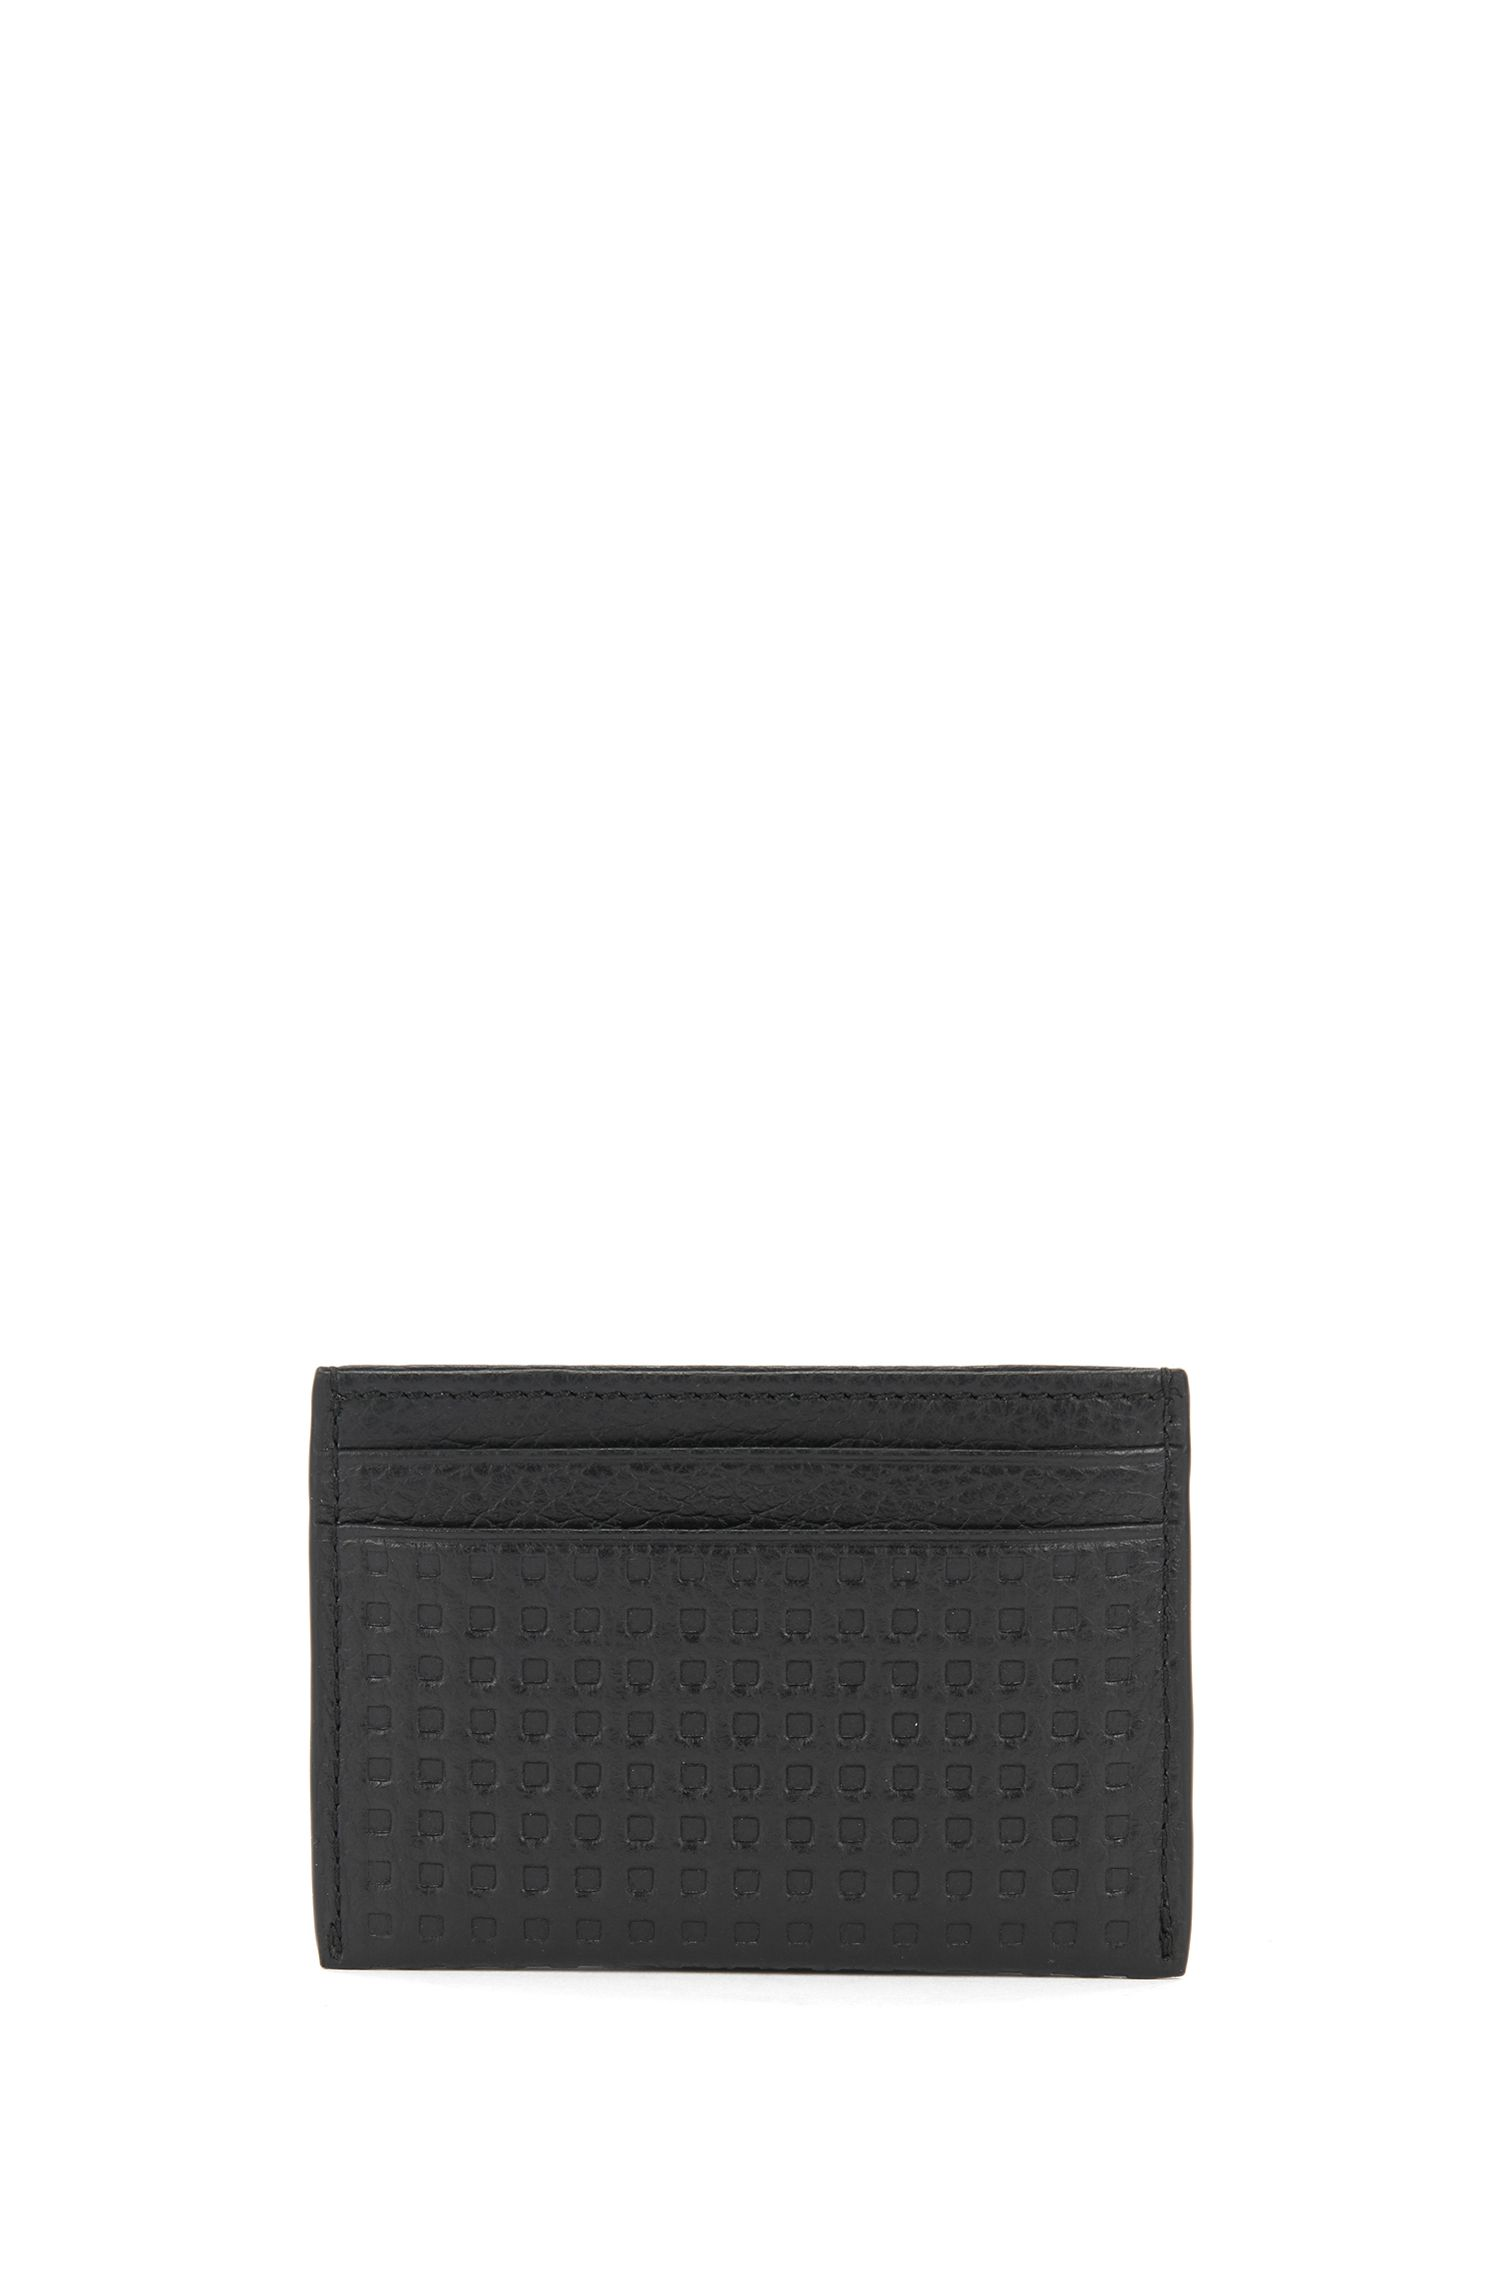 Leather Card Holder | Marseille S Card, Black